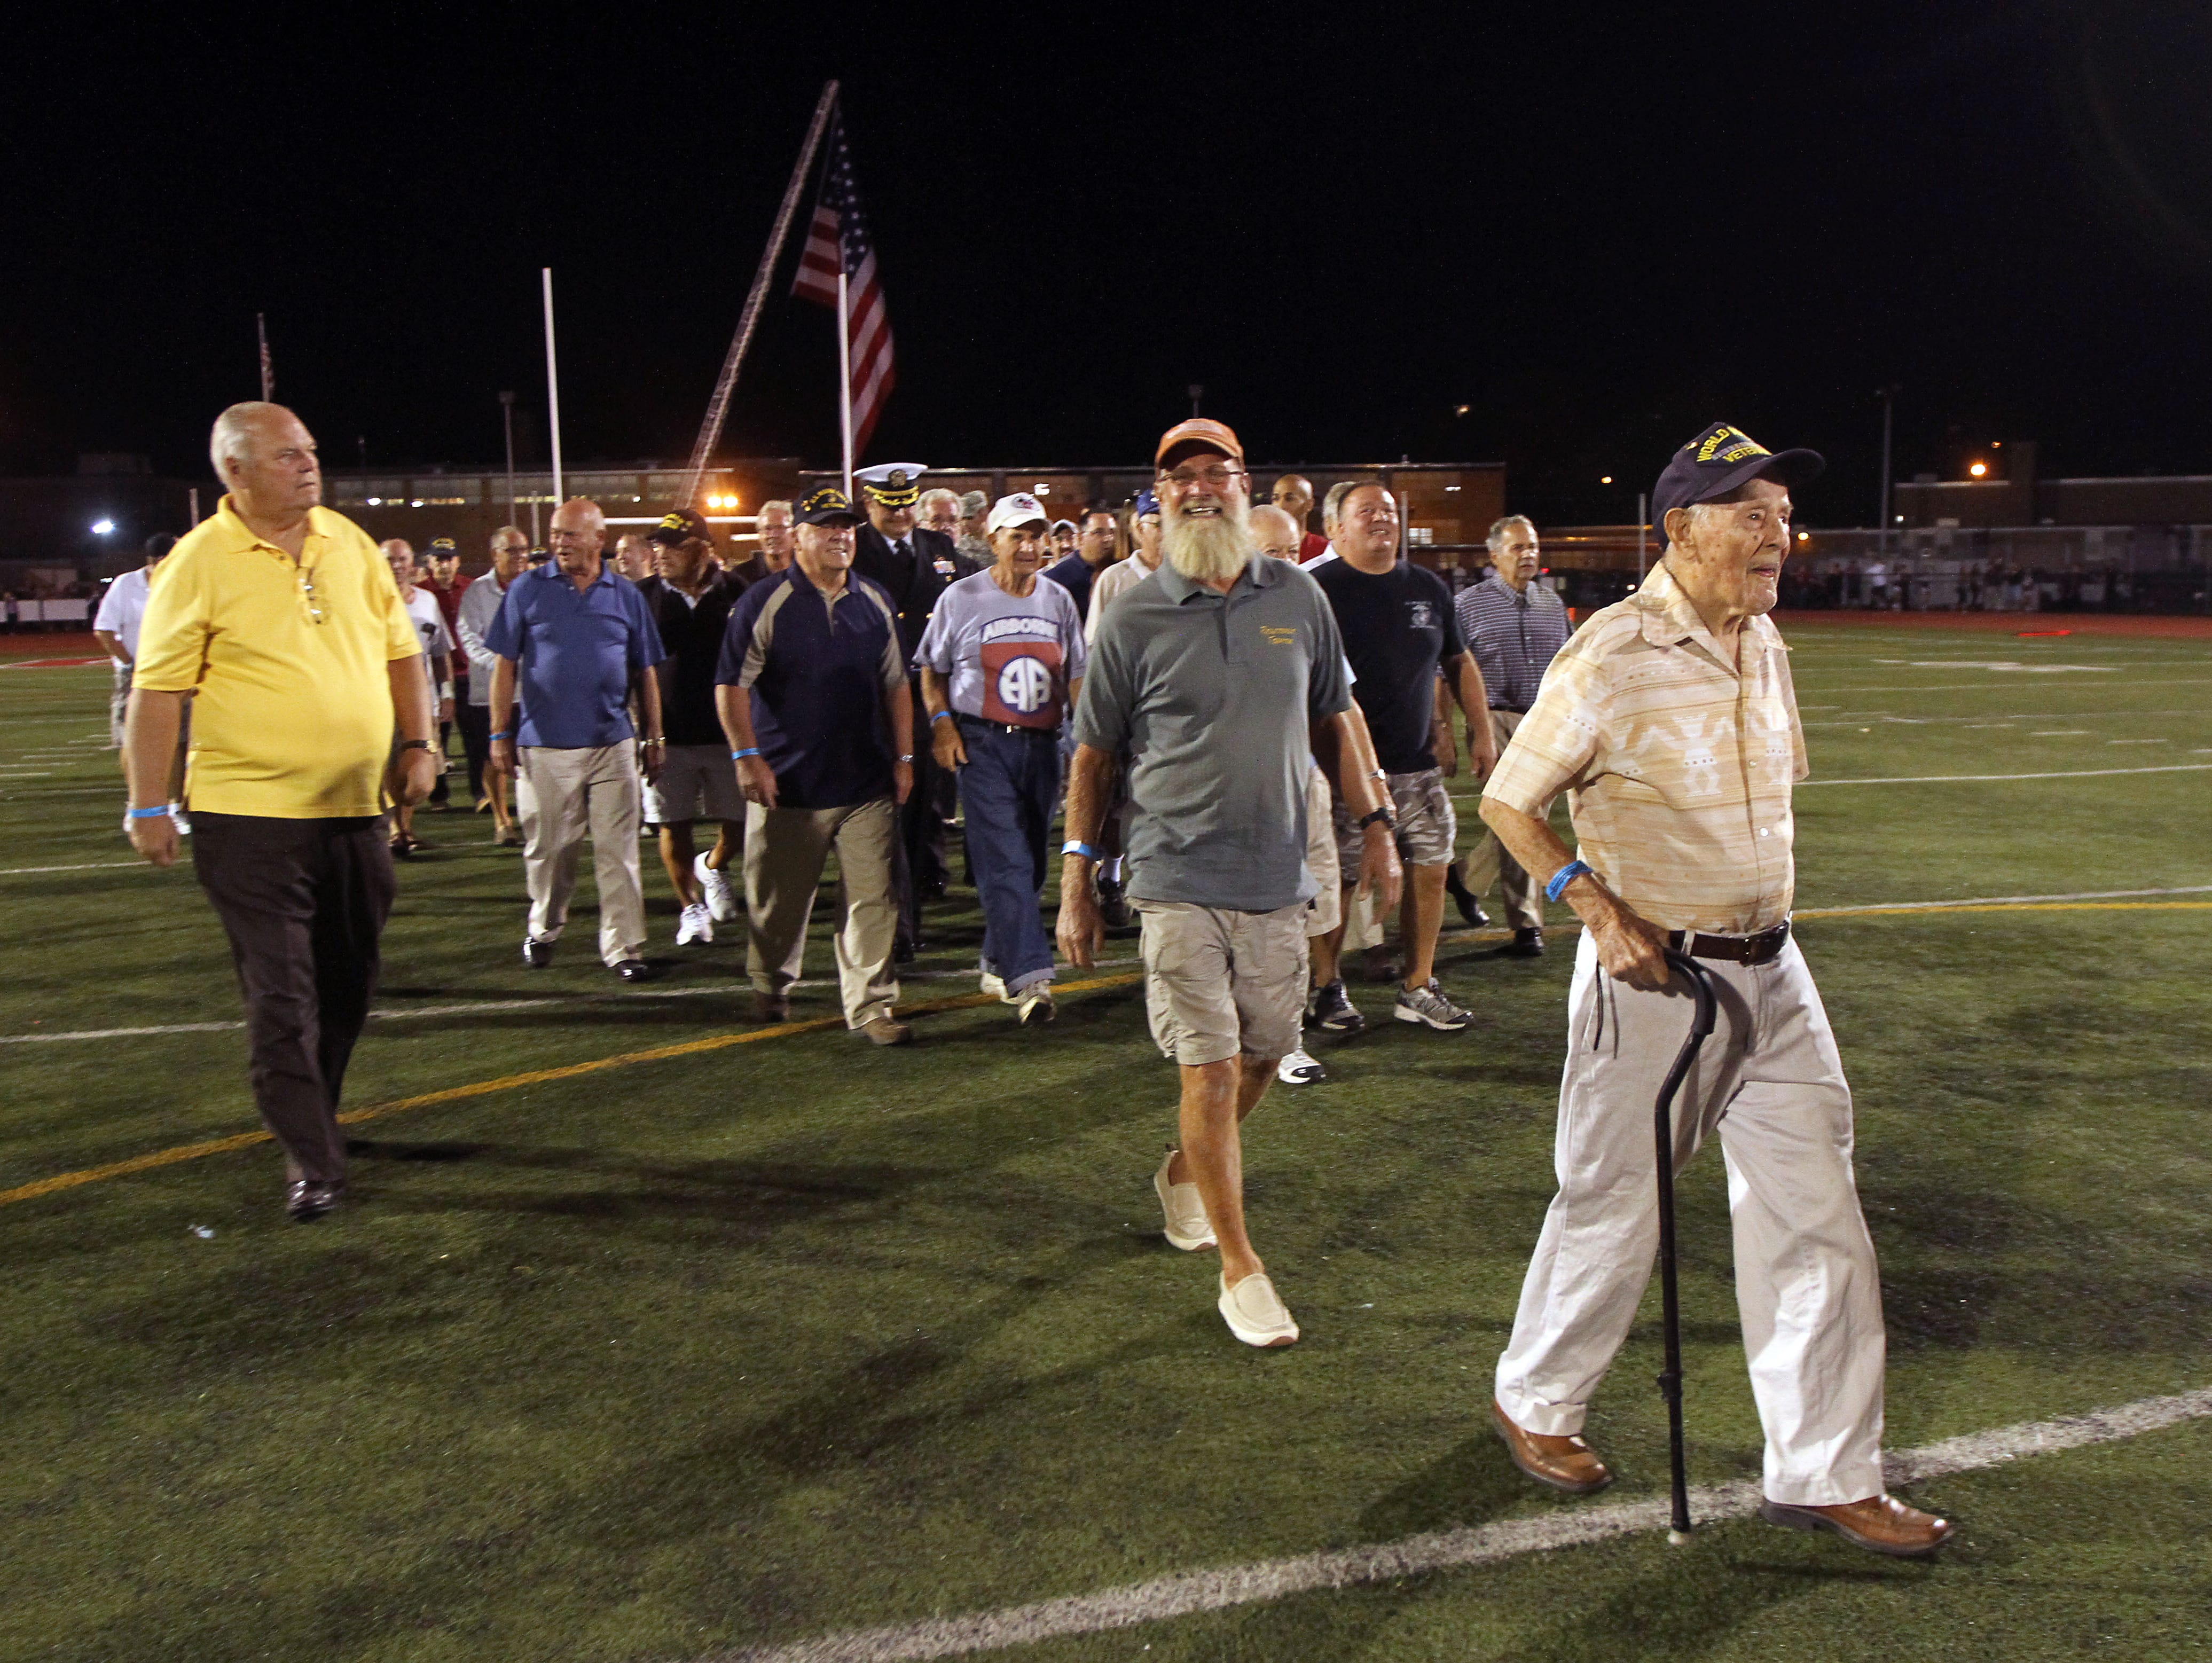 98-year-old World War II Air Force Veteran Steve Bolcar, r, leads a group of Veterans on the Boonton High football field as the school honored its graduate military veterans during halftime of the Boonton High School football game Friday night. The vets, some of whom are still residents, others coming back from out of town, also enjoyed a tailgate party prior to the game and ceremony.